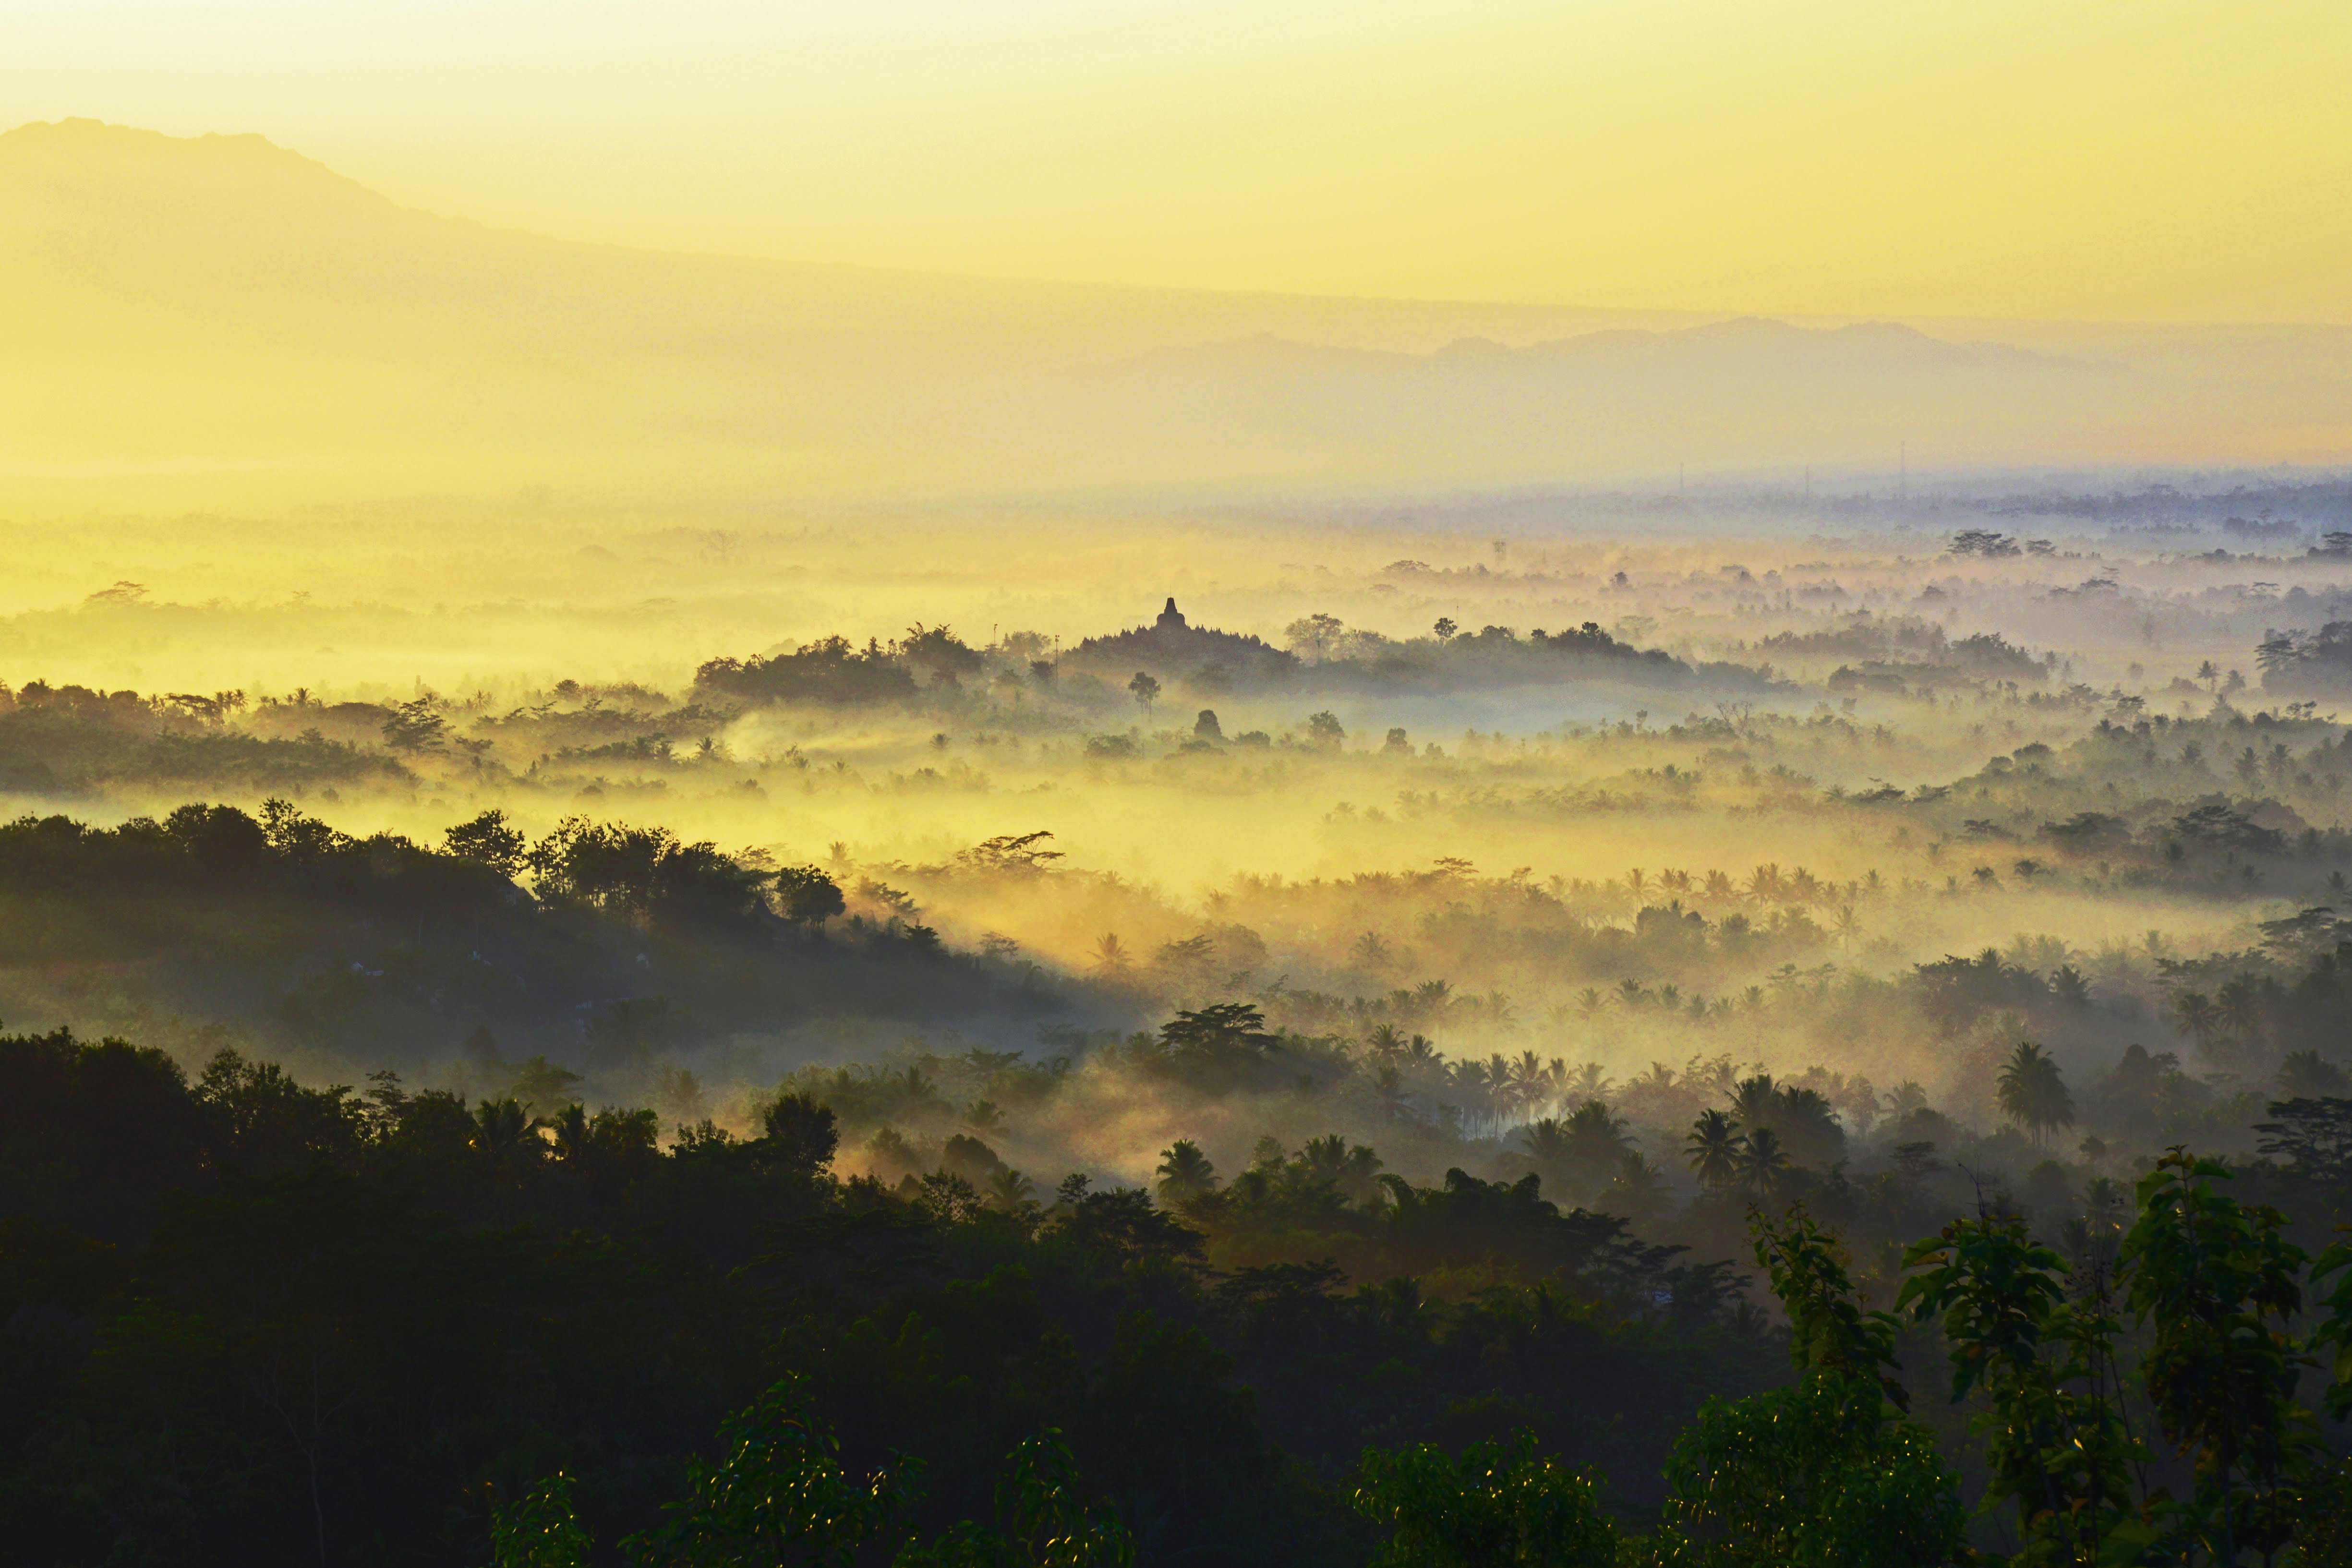 sunrise-over-borobudur-temple-java-indonesia_20832037682_o